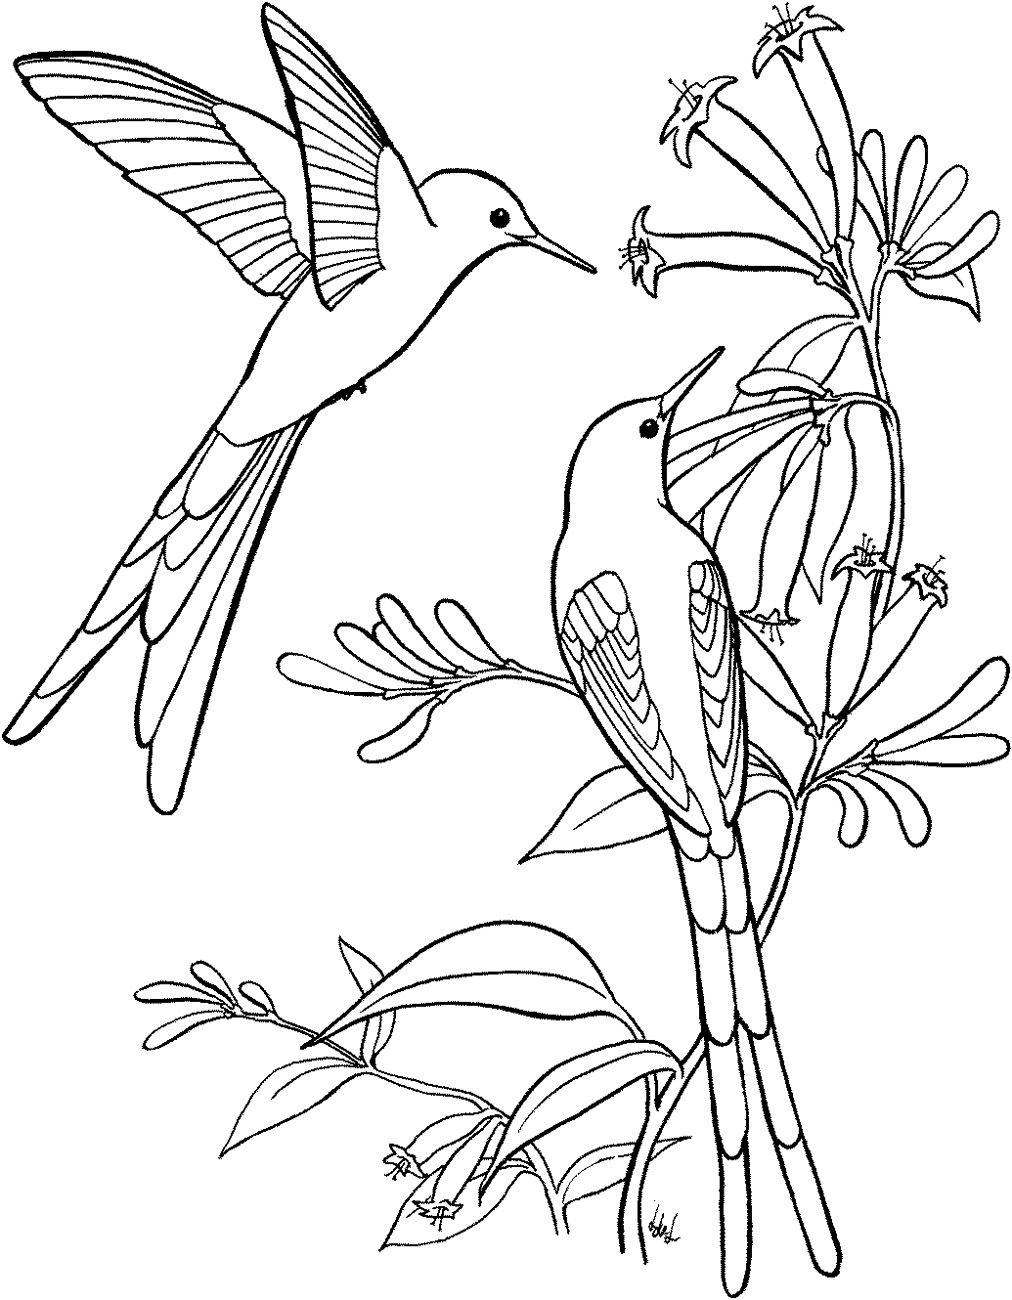 magnolia-and-bird-coloring-page.gif (1013×1188) | embroidery ...